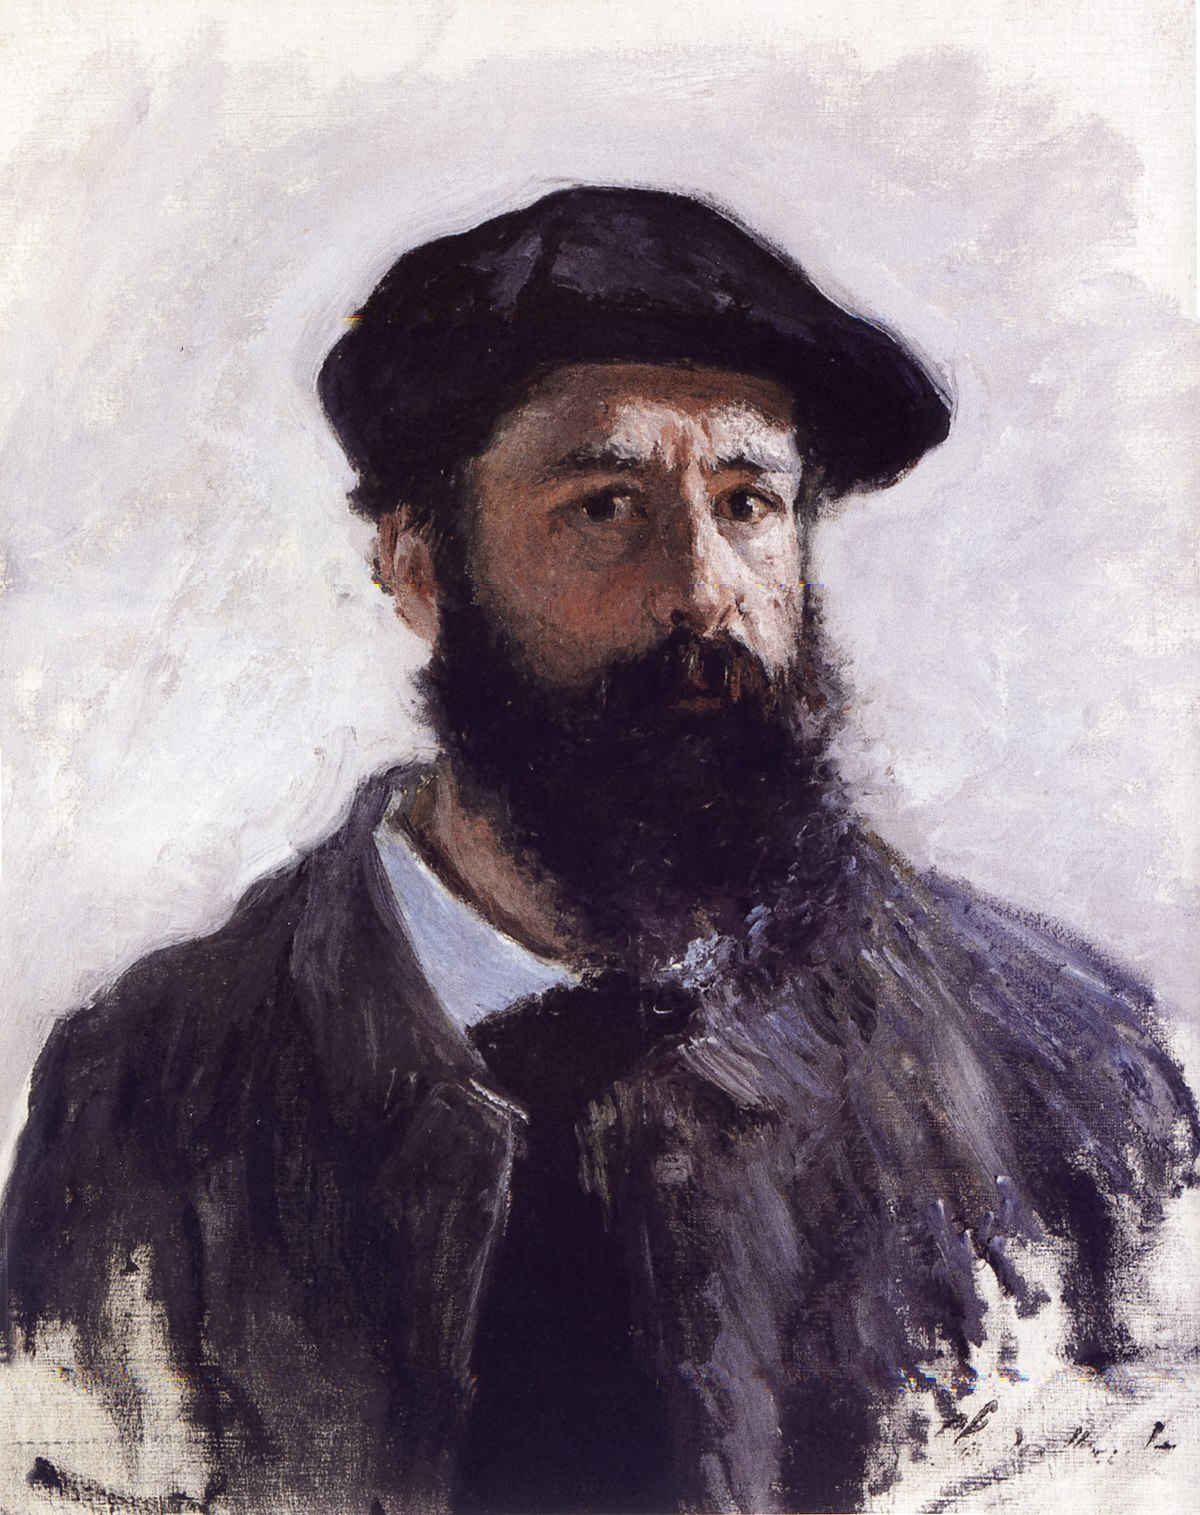 List of paintings by Claude Monet - Wikipedia